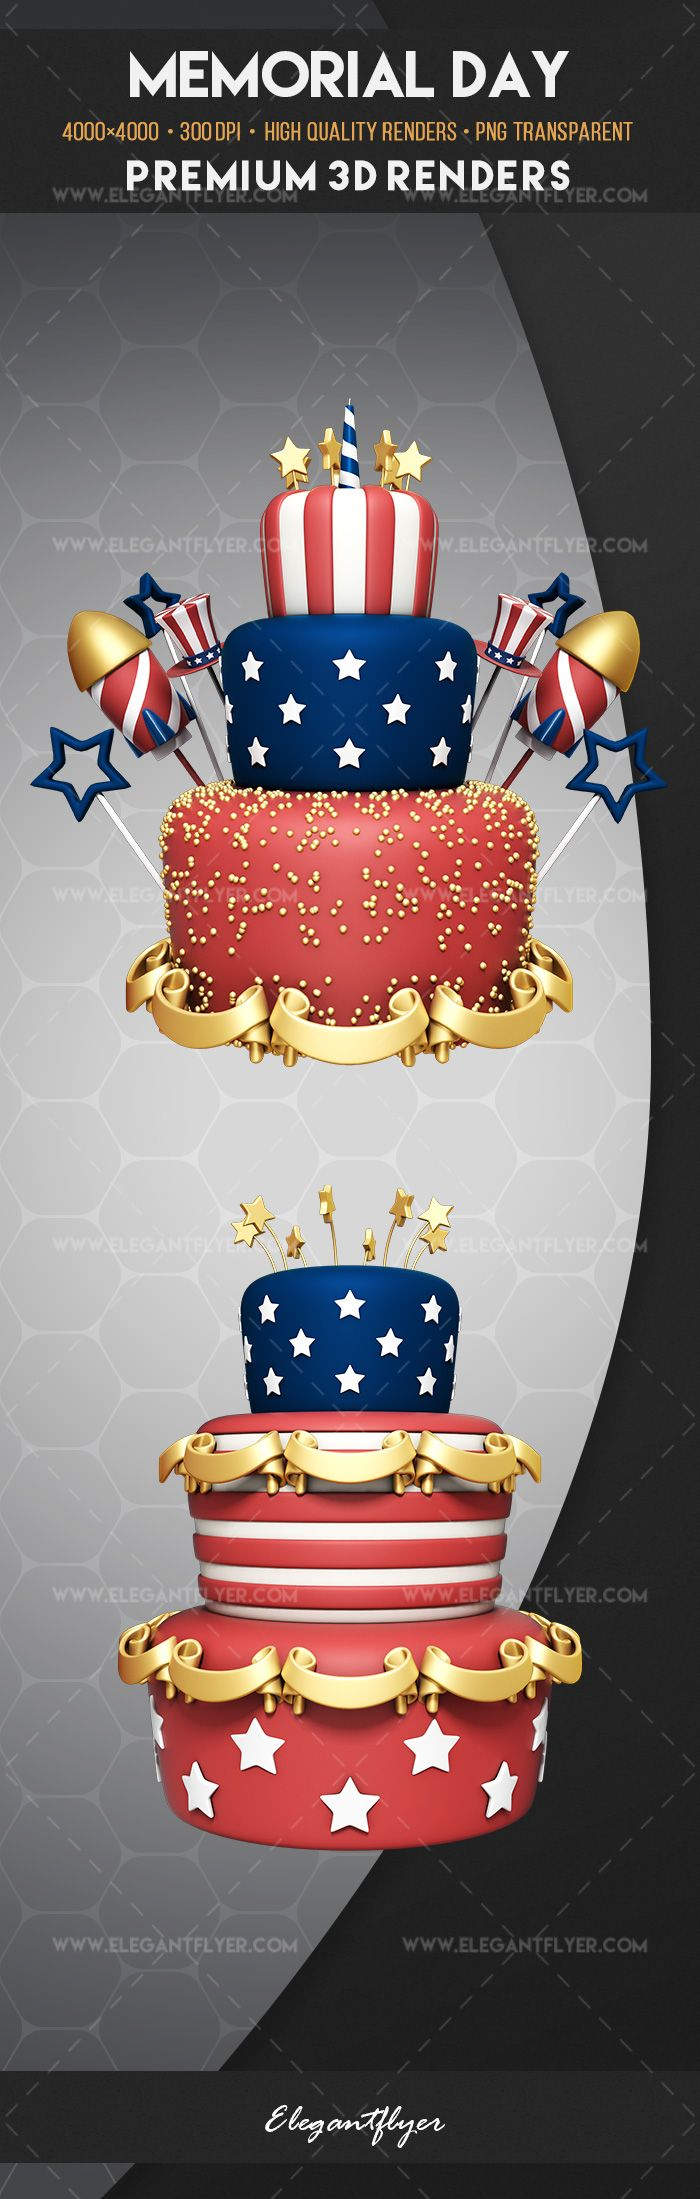 Memorial Day – Premium 3d Render Templates